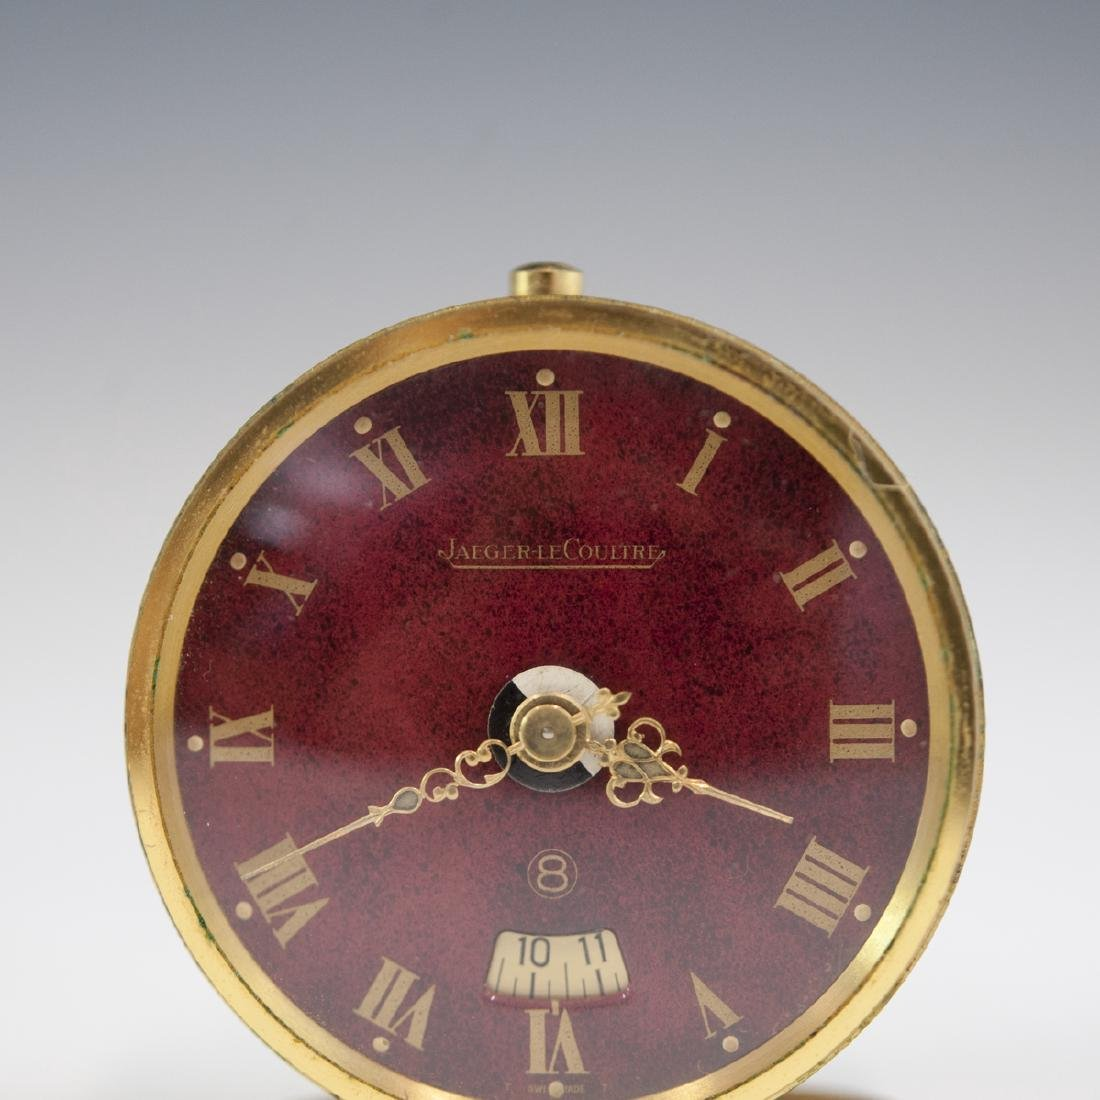 Jaeger Lecoultre Gilt Metal Travel Clock - 5